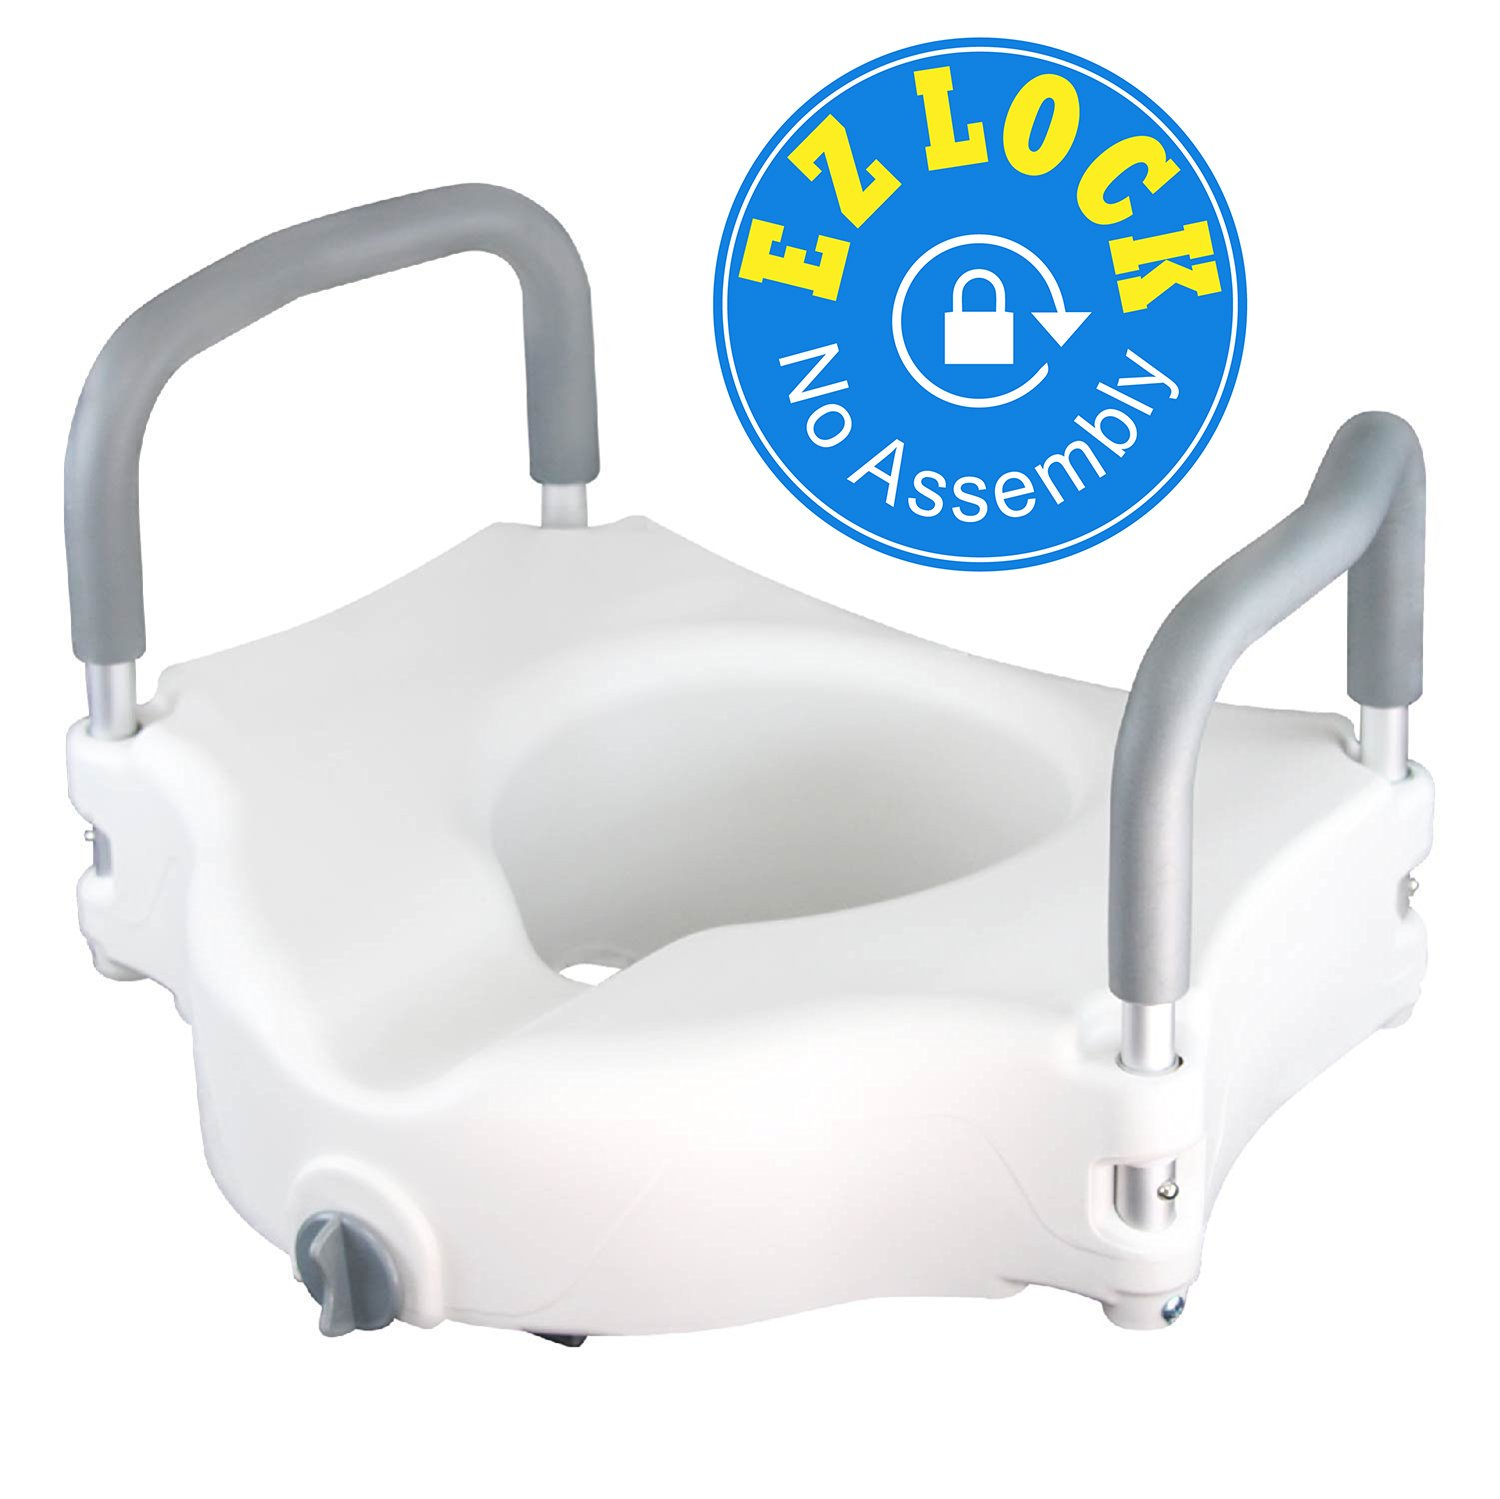 Vaunn Medical Elevated Raised Toilet Seat & Commode Riser with Removable Handles and Locking Mechanism, White